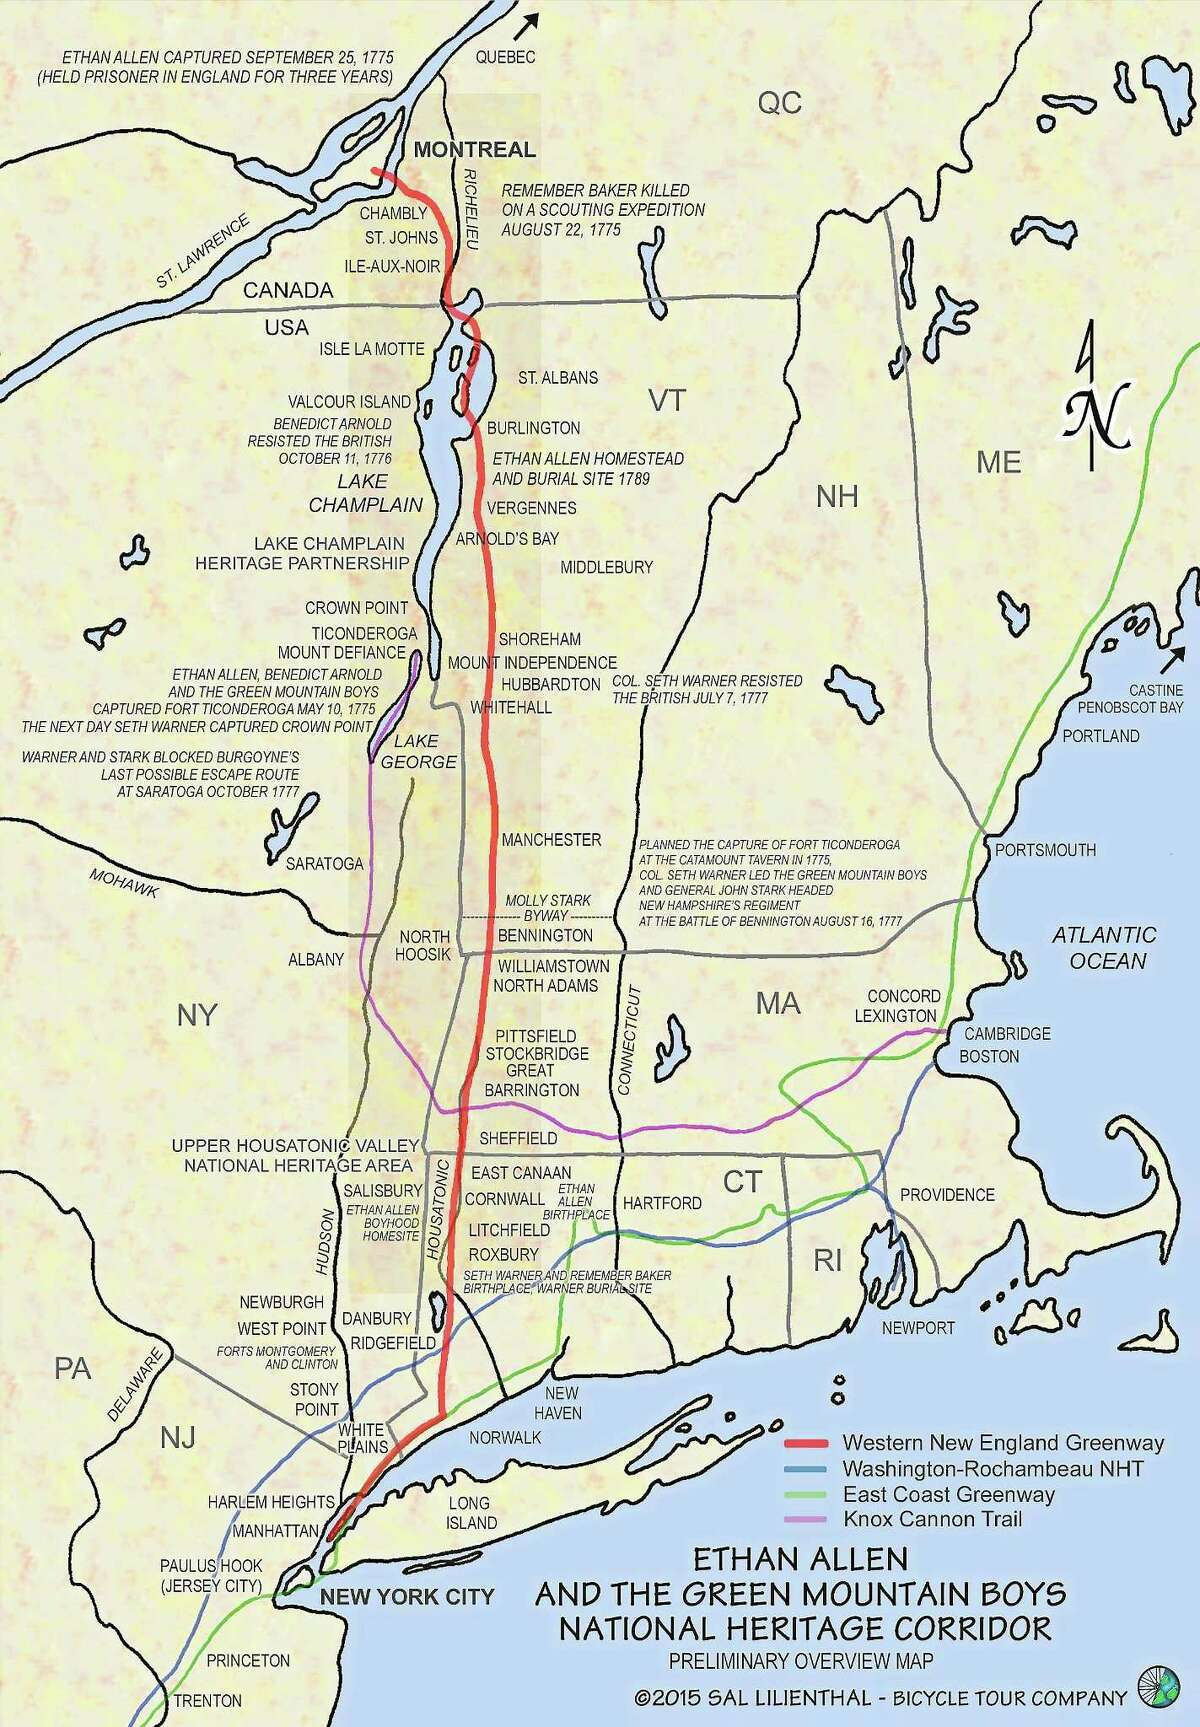 Kent resident Sal Lilienthal is working to establish the Ethan Allen and the Green Mountain Boys National Heritage Corridor.